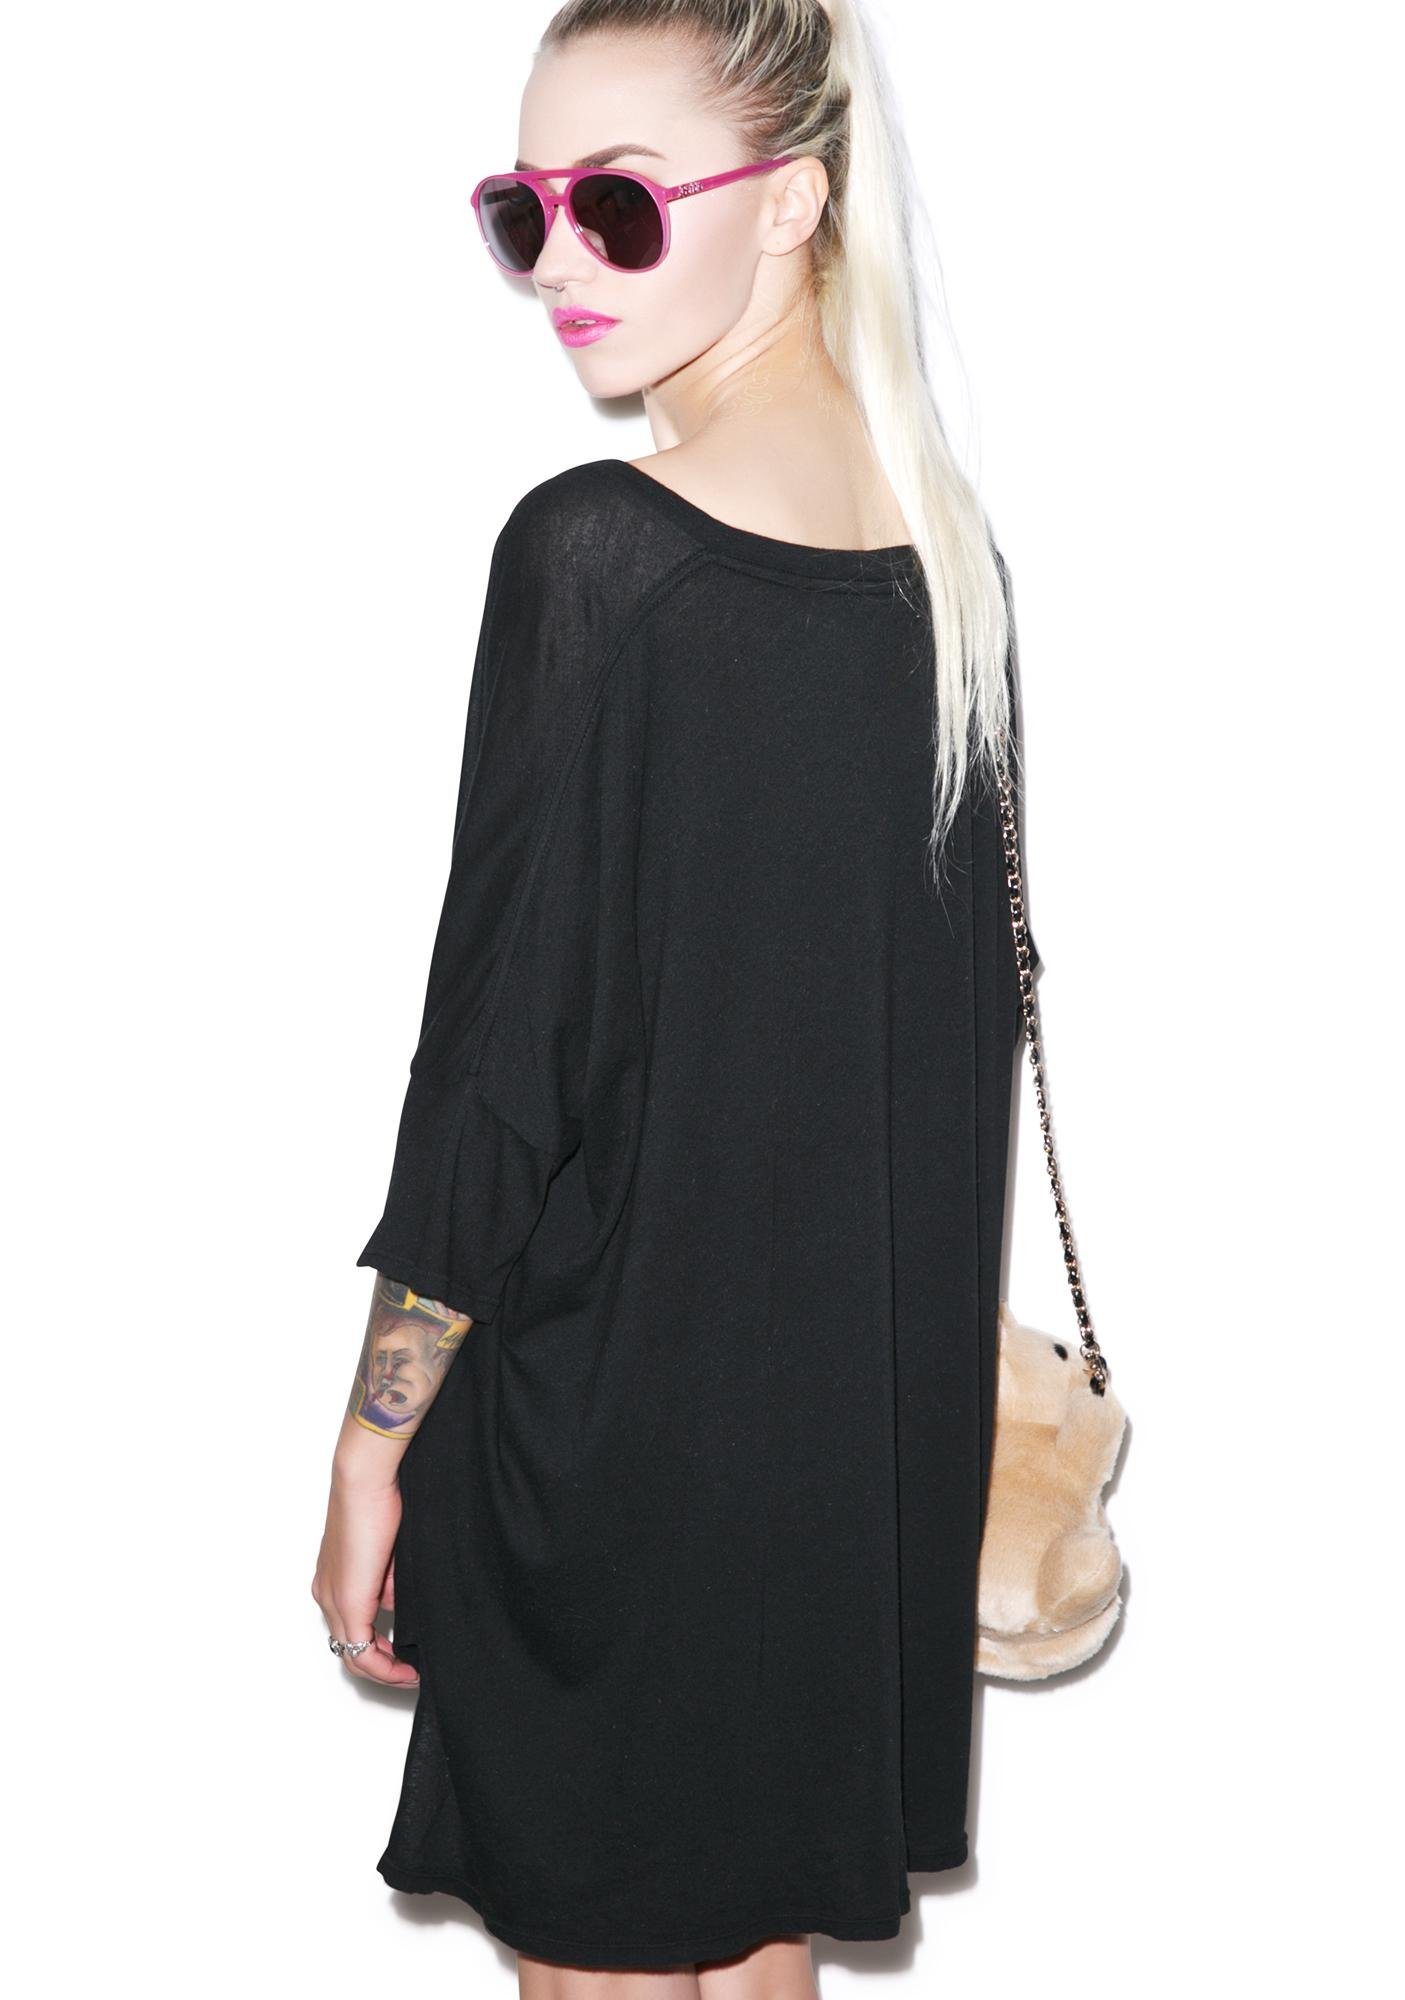 Wildfox Couture Hangover Club Sunday Morning V-neck Tee